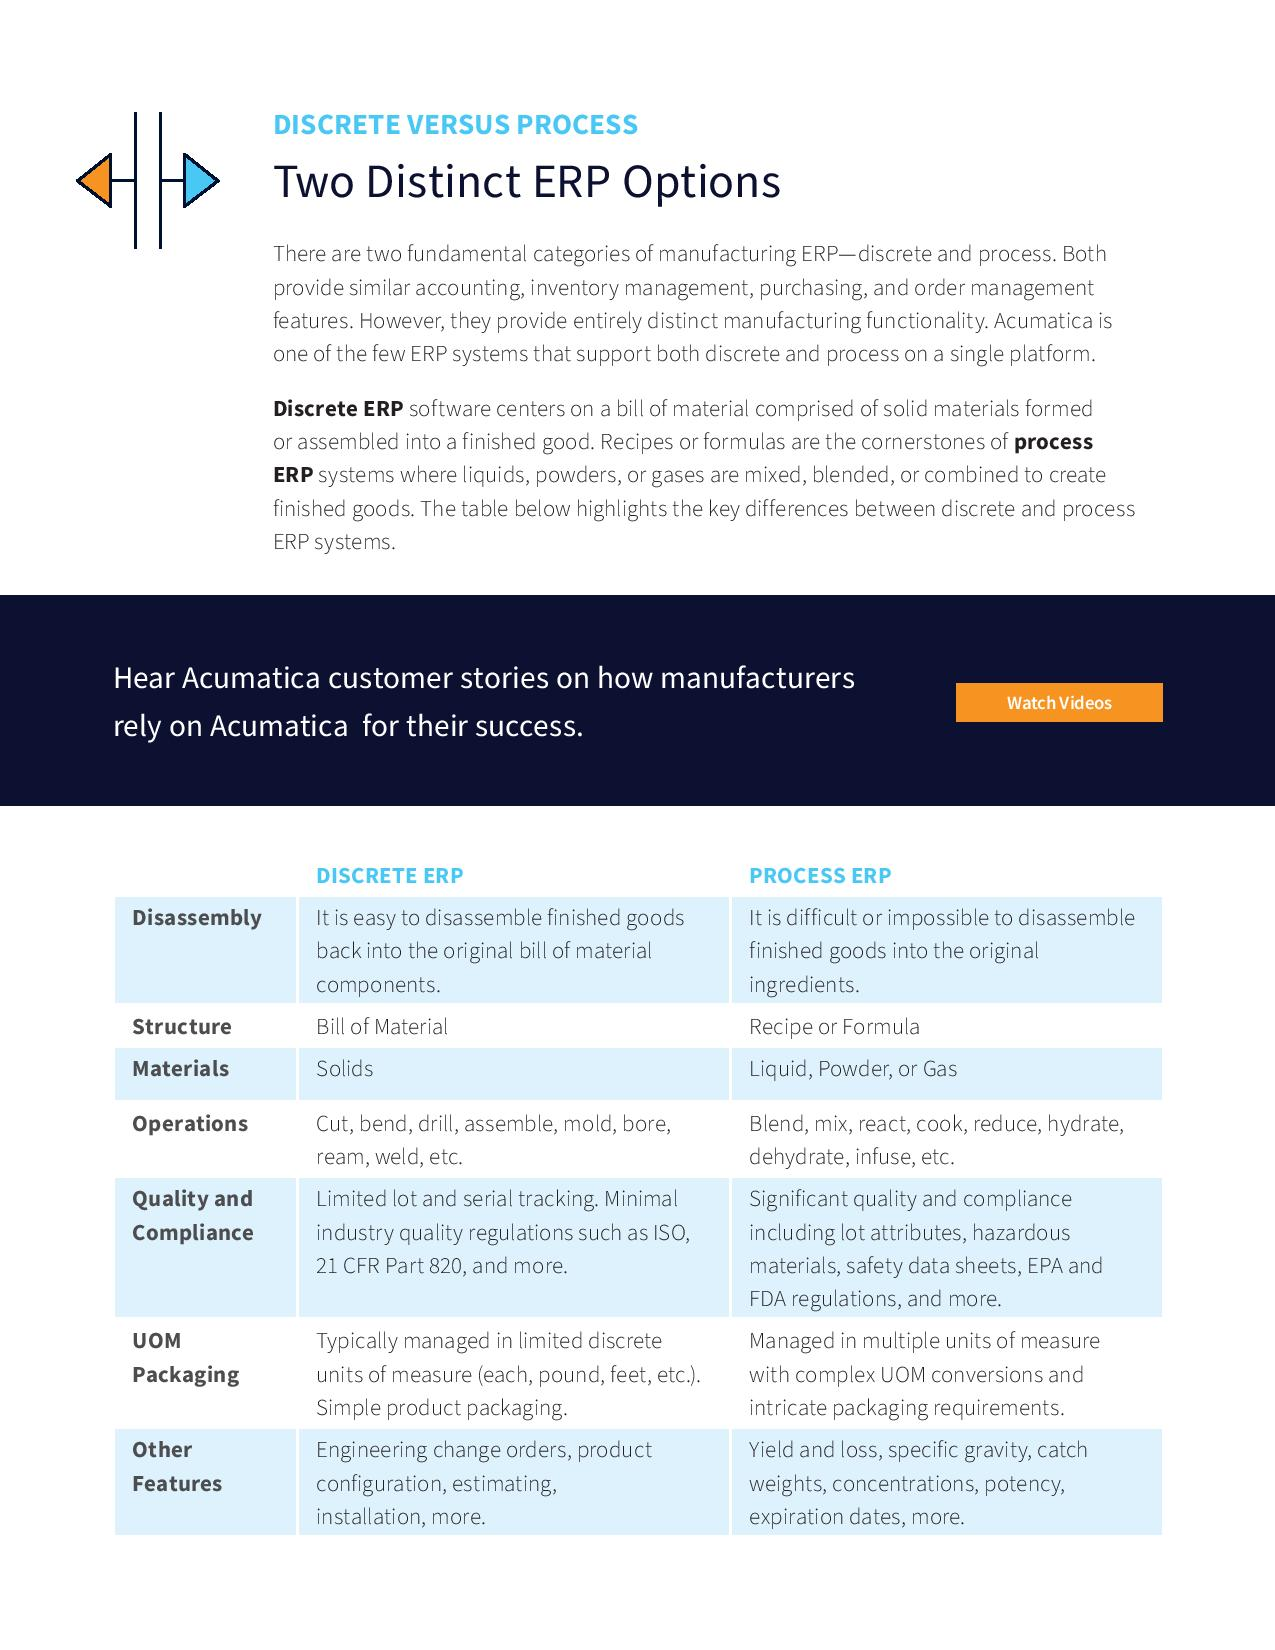 The Manufacturing ERP Guide, page 1